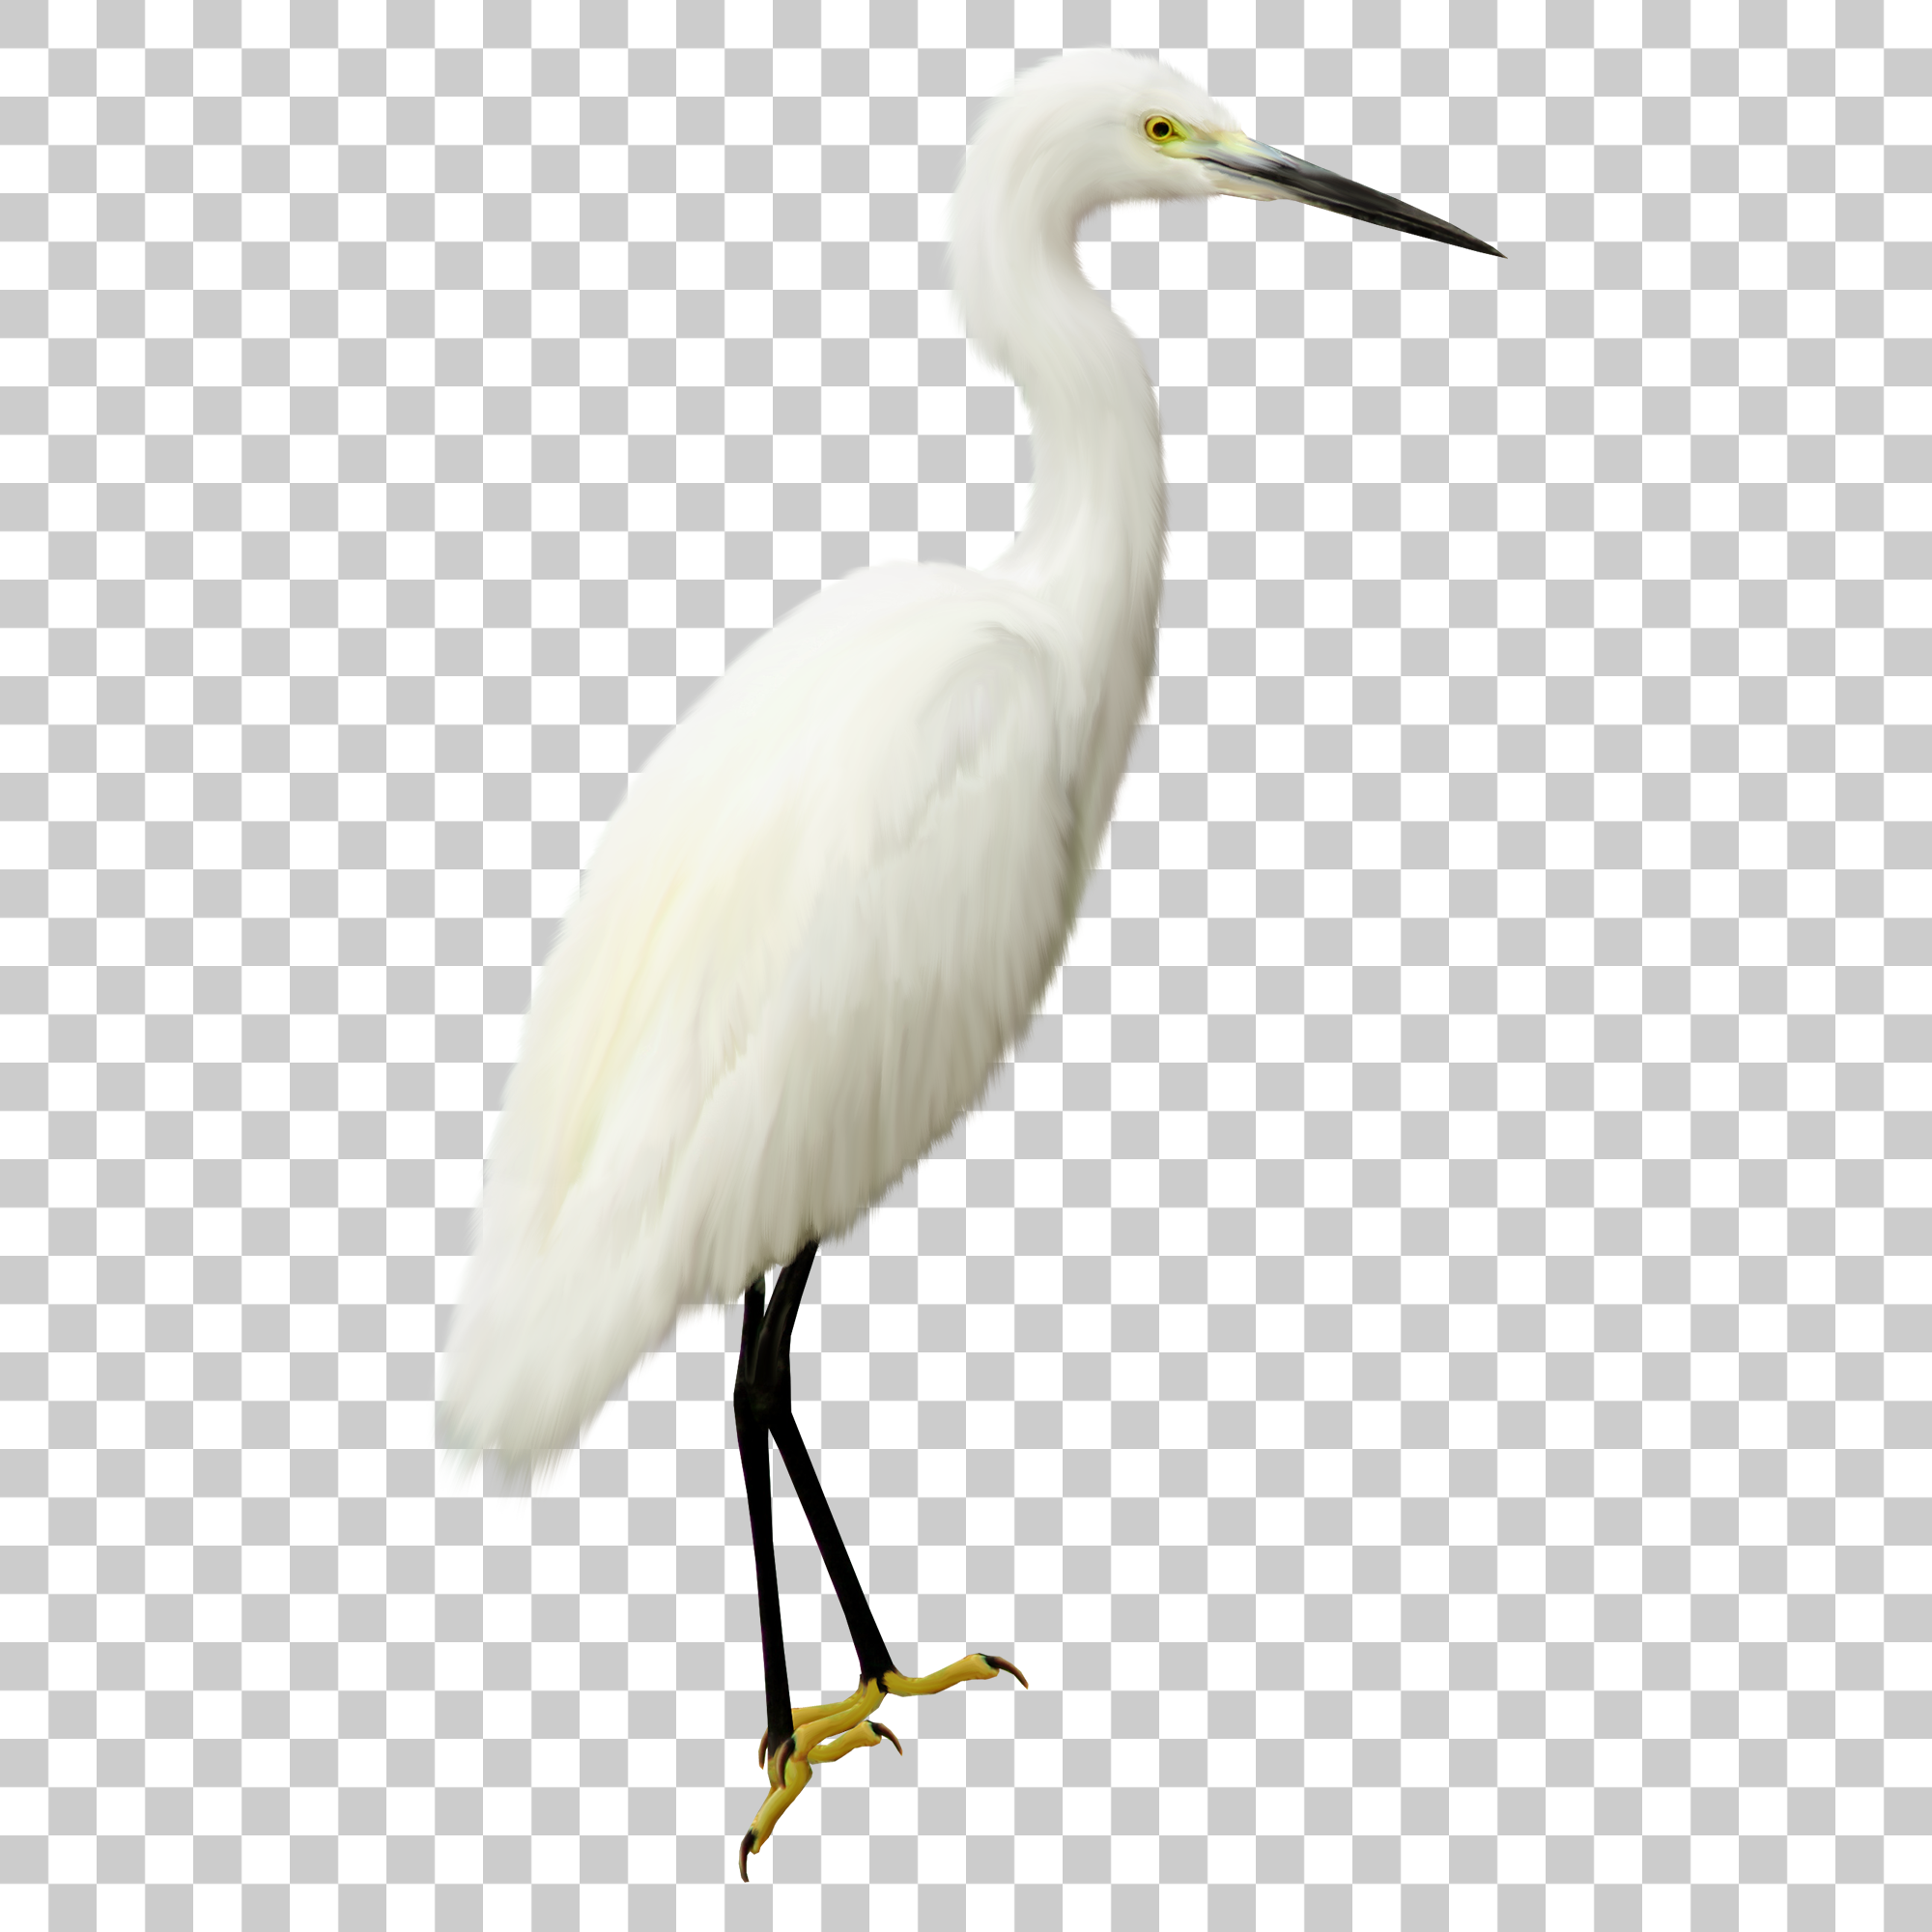 Crane Stork Bird Png Image With Transparent Background Png Images Image Stock Images Free